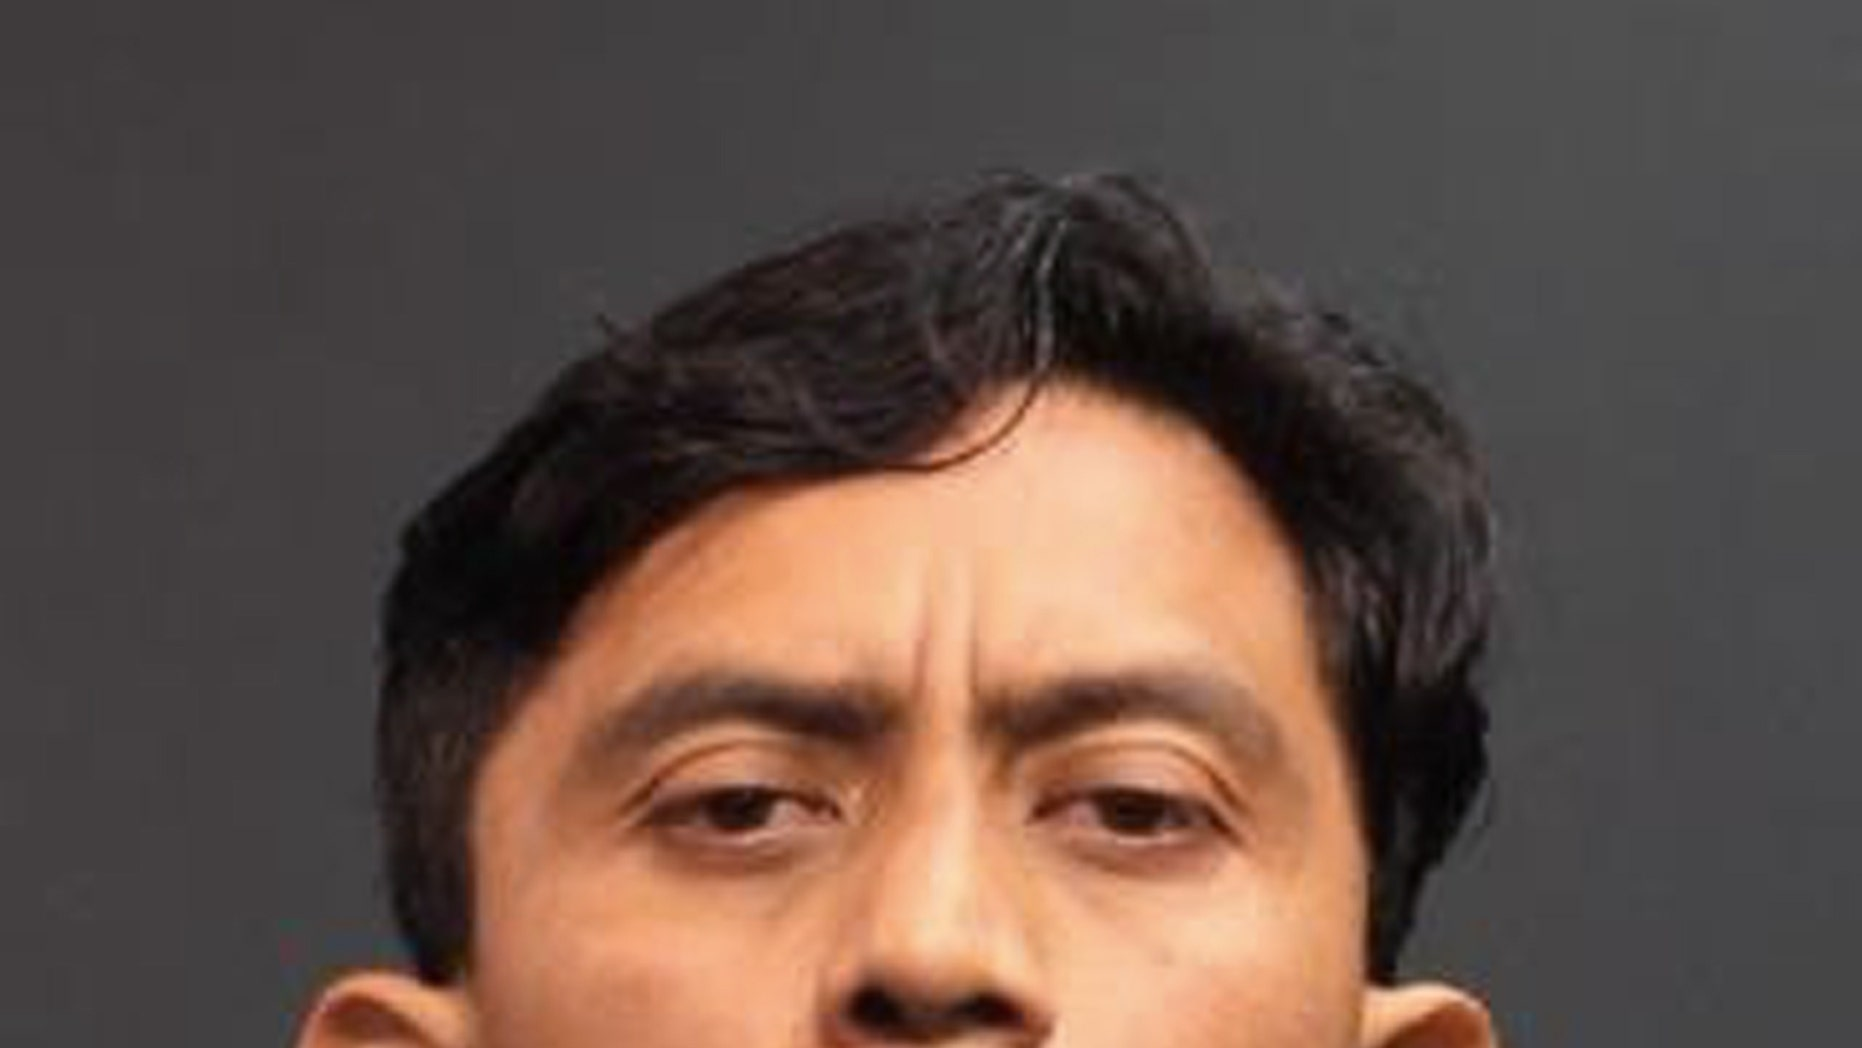 Isidro Garcia in an undated photo released by the Santa Ana, Calif., Police Department.